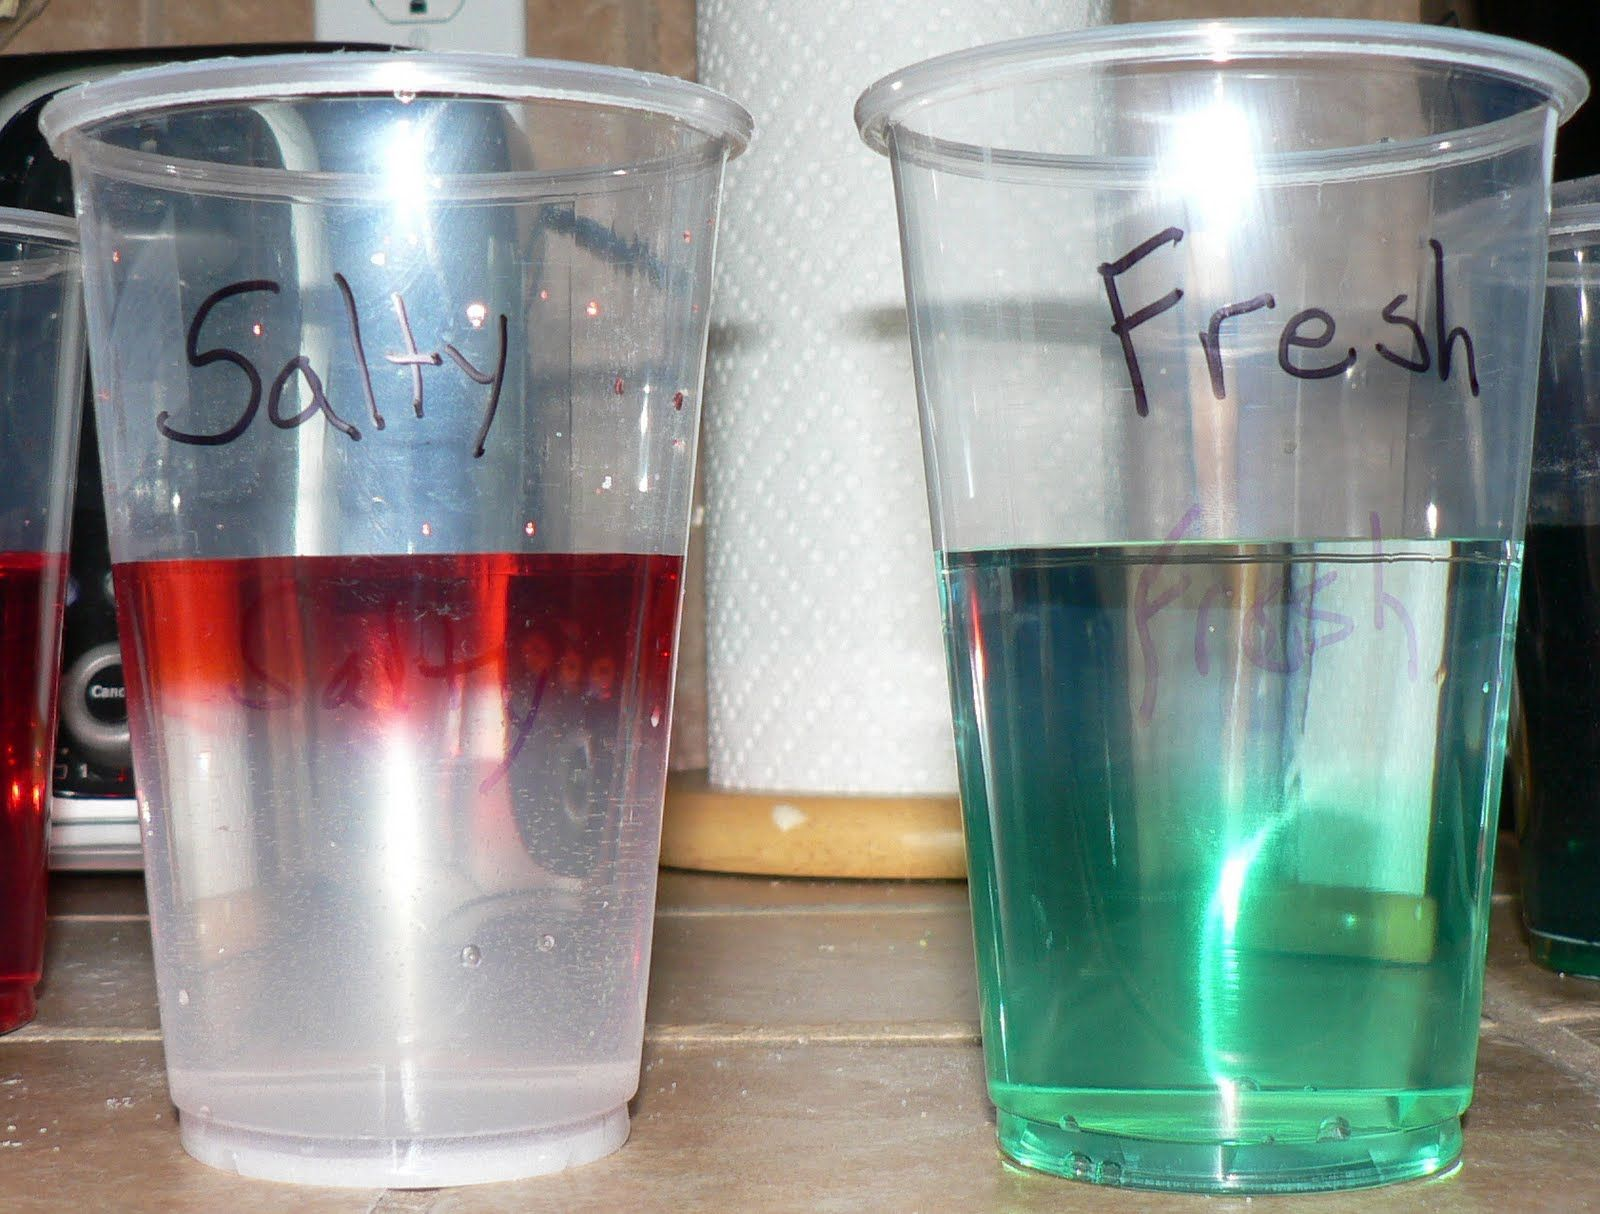 Salt And Freshwater Experiment